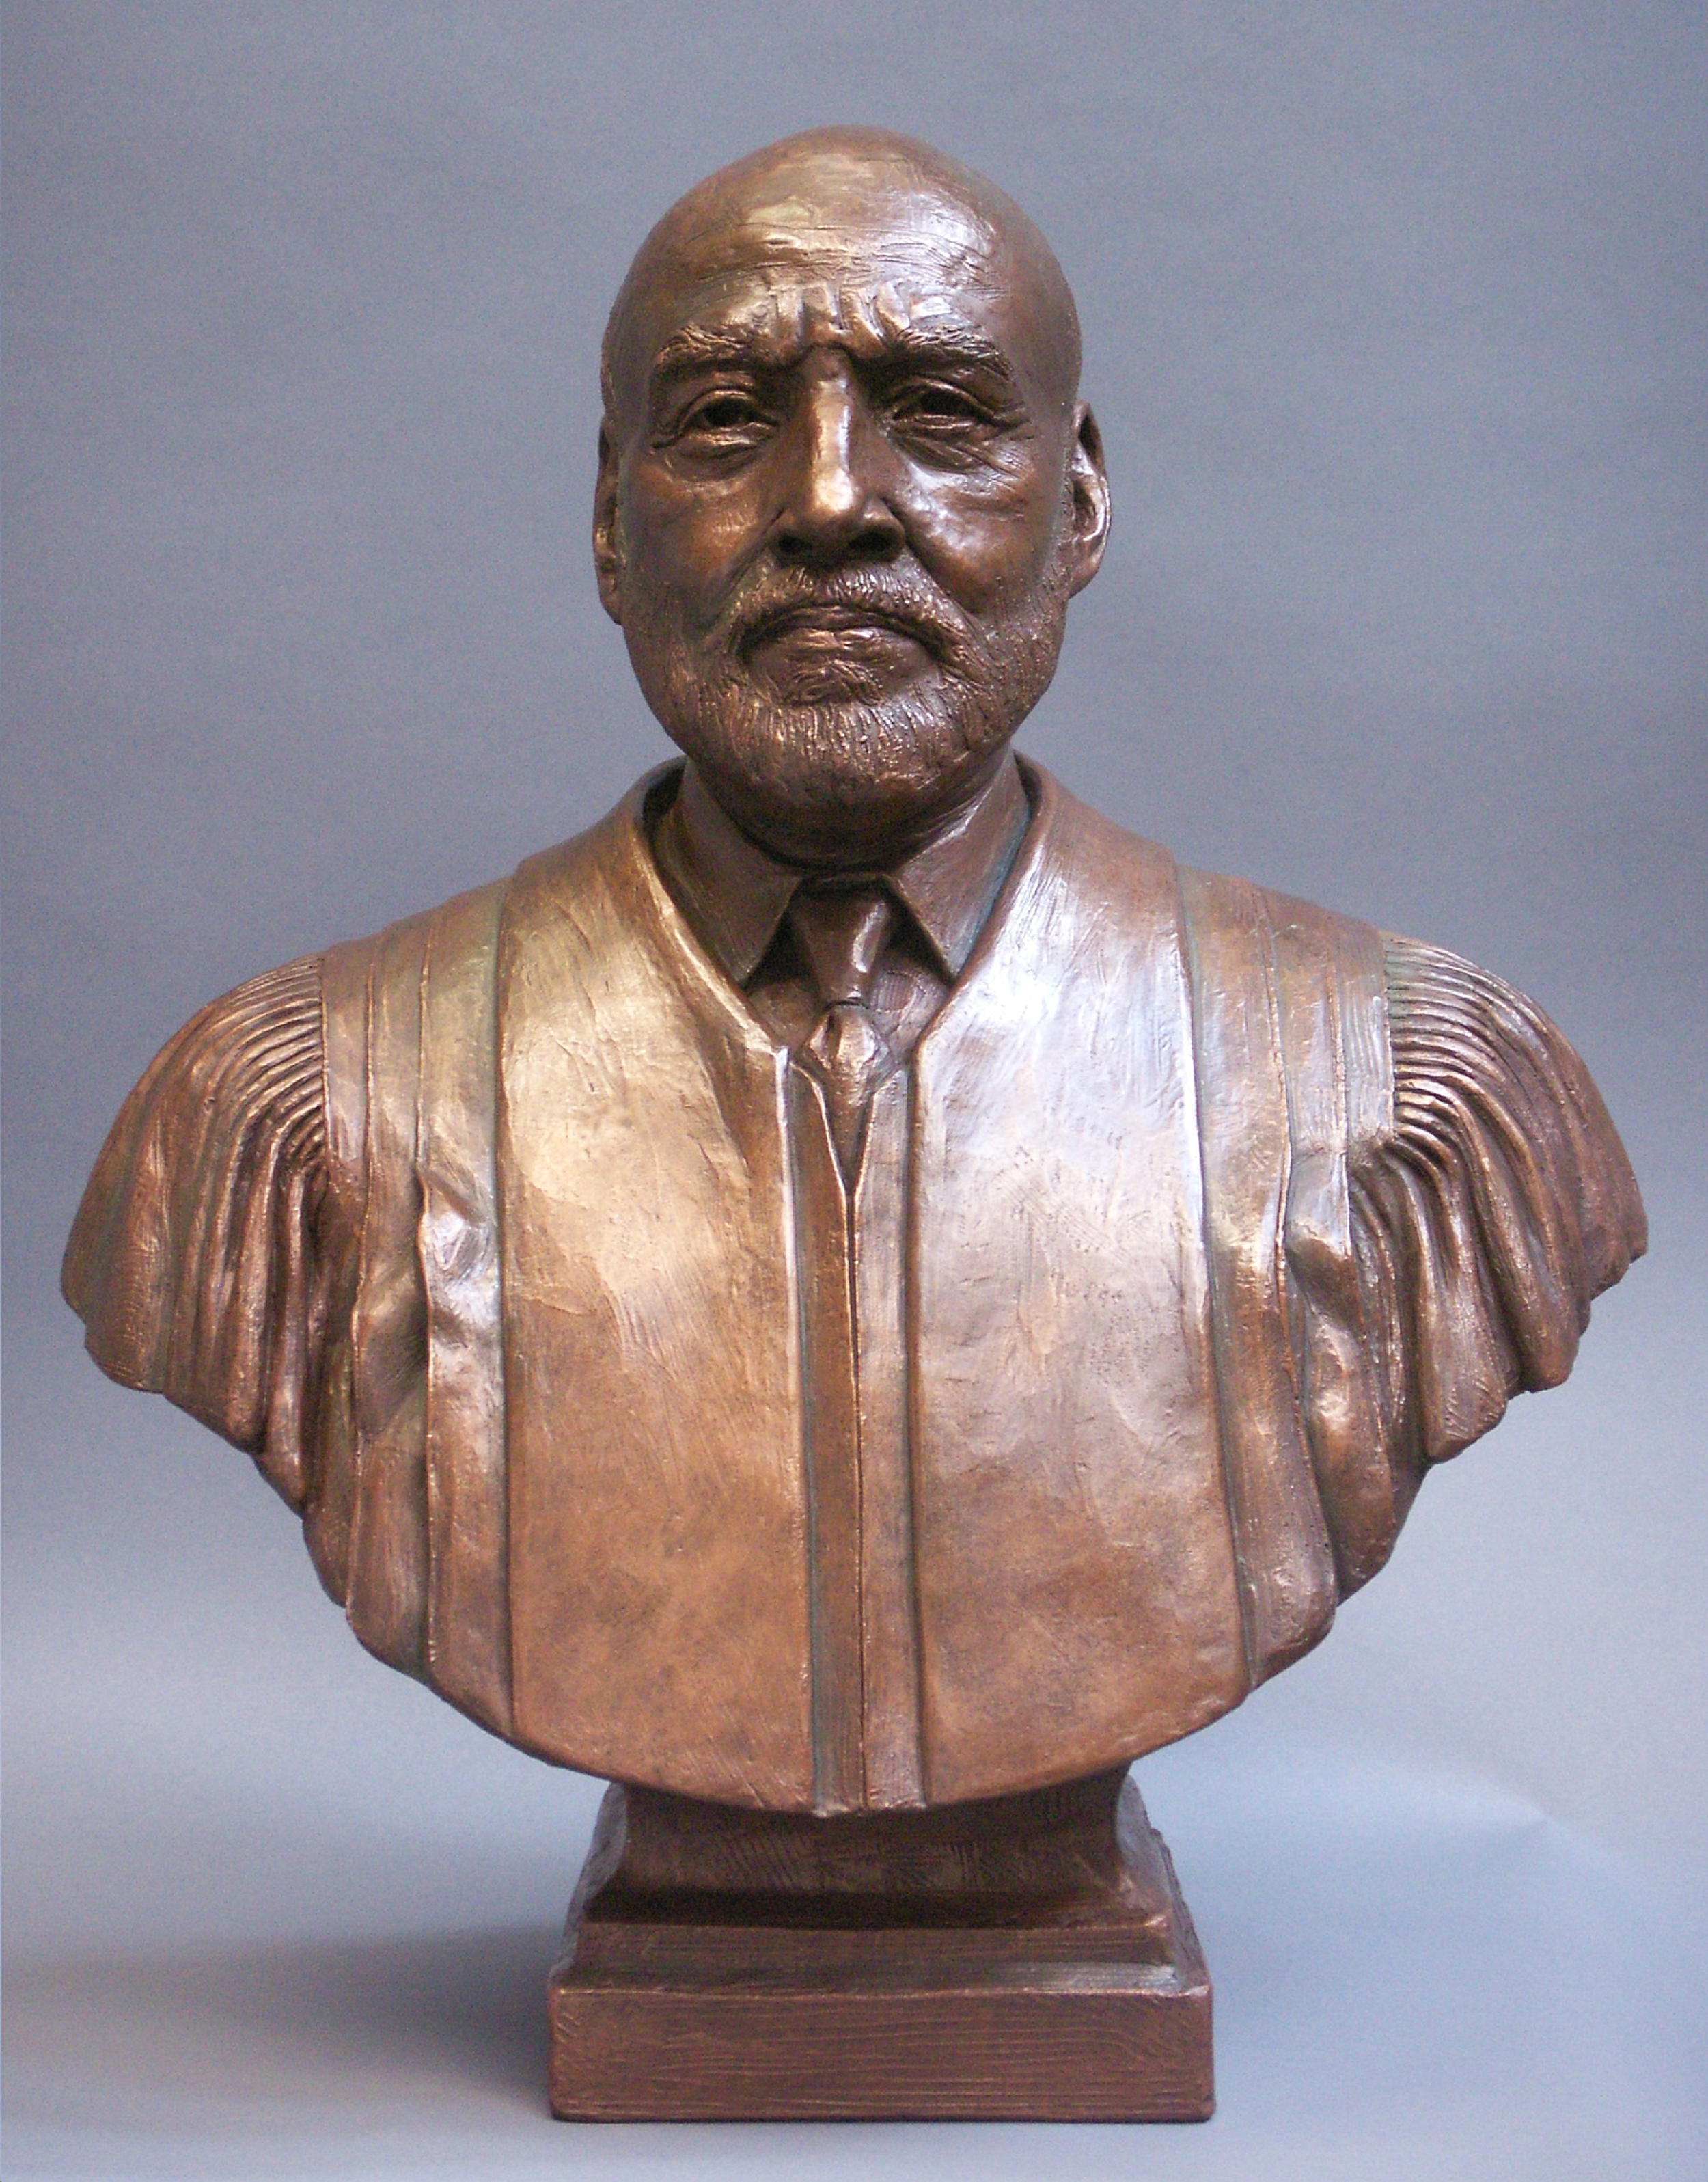 Chief Justice Birch, sculpture collection